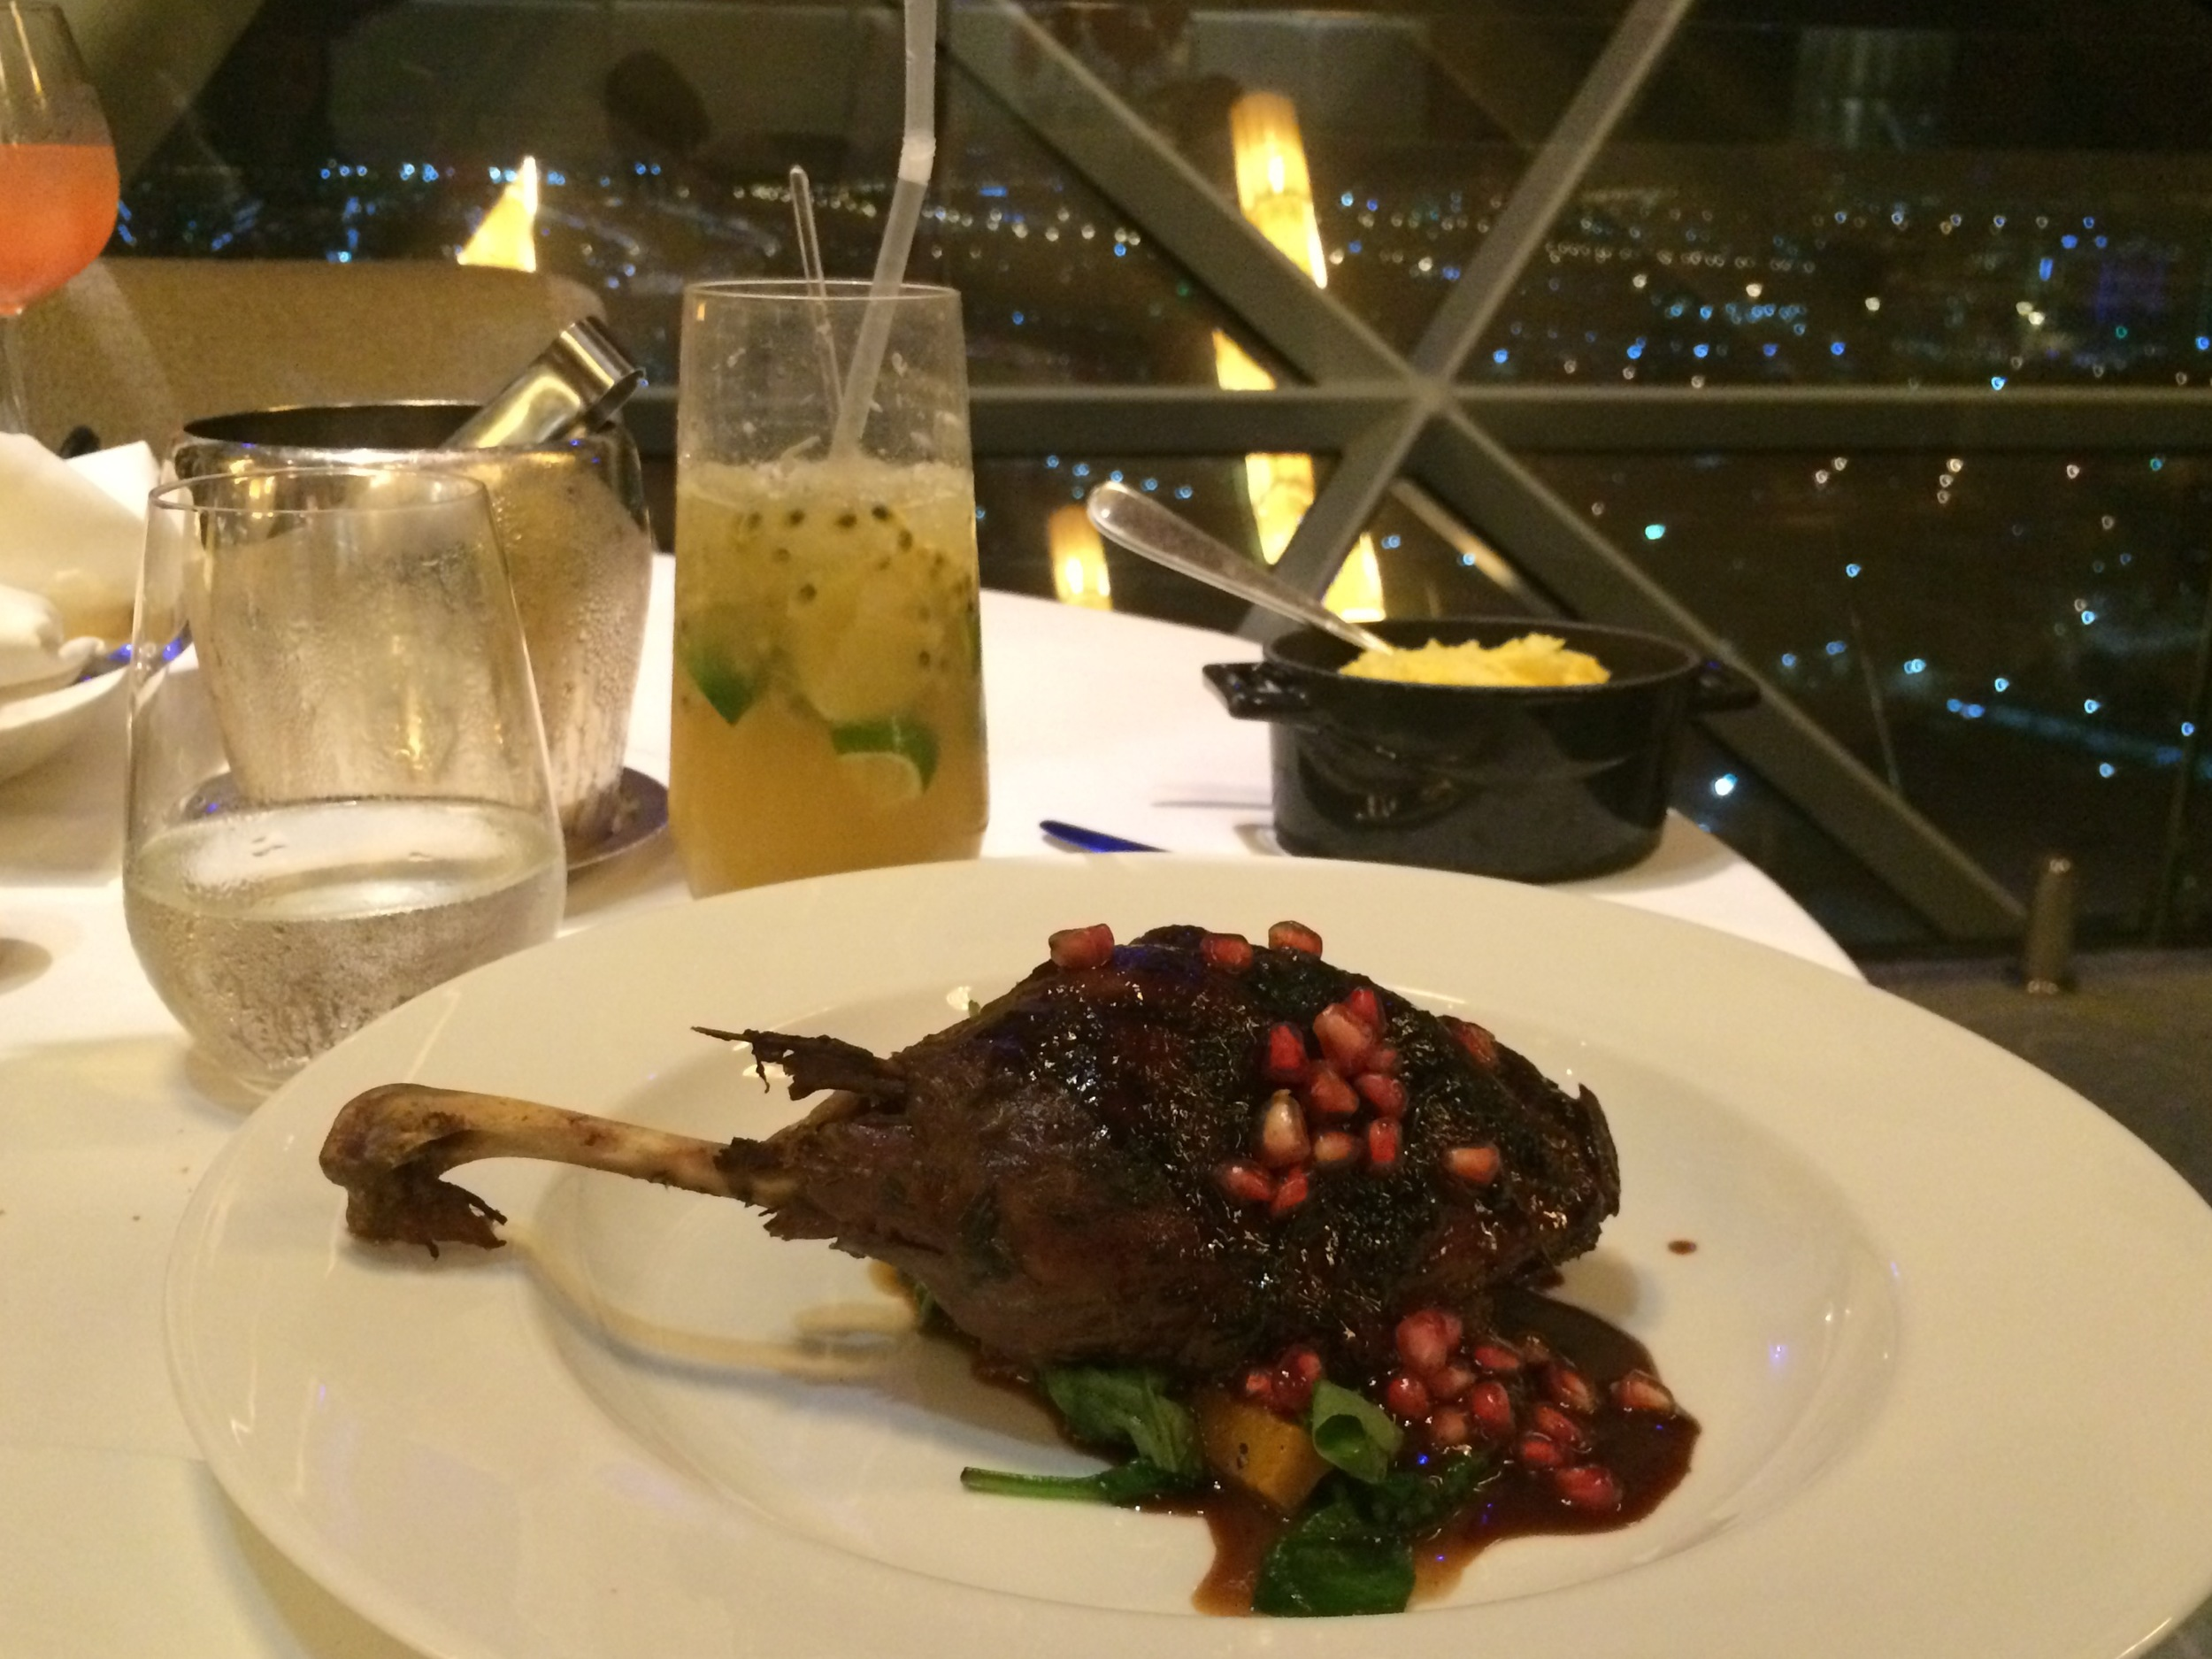 Delicious dinner at the 18 Degree Restaurant in Abu Dhabi